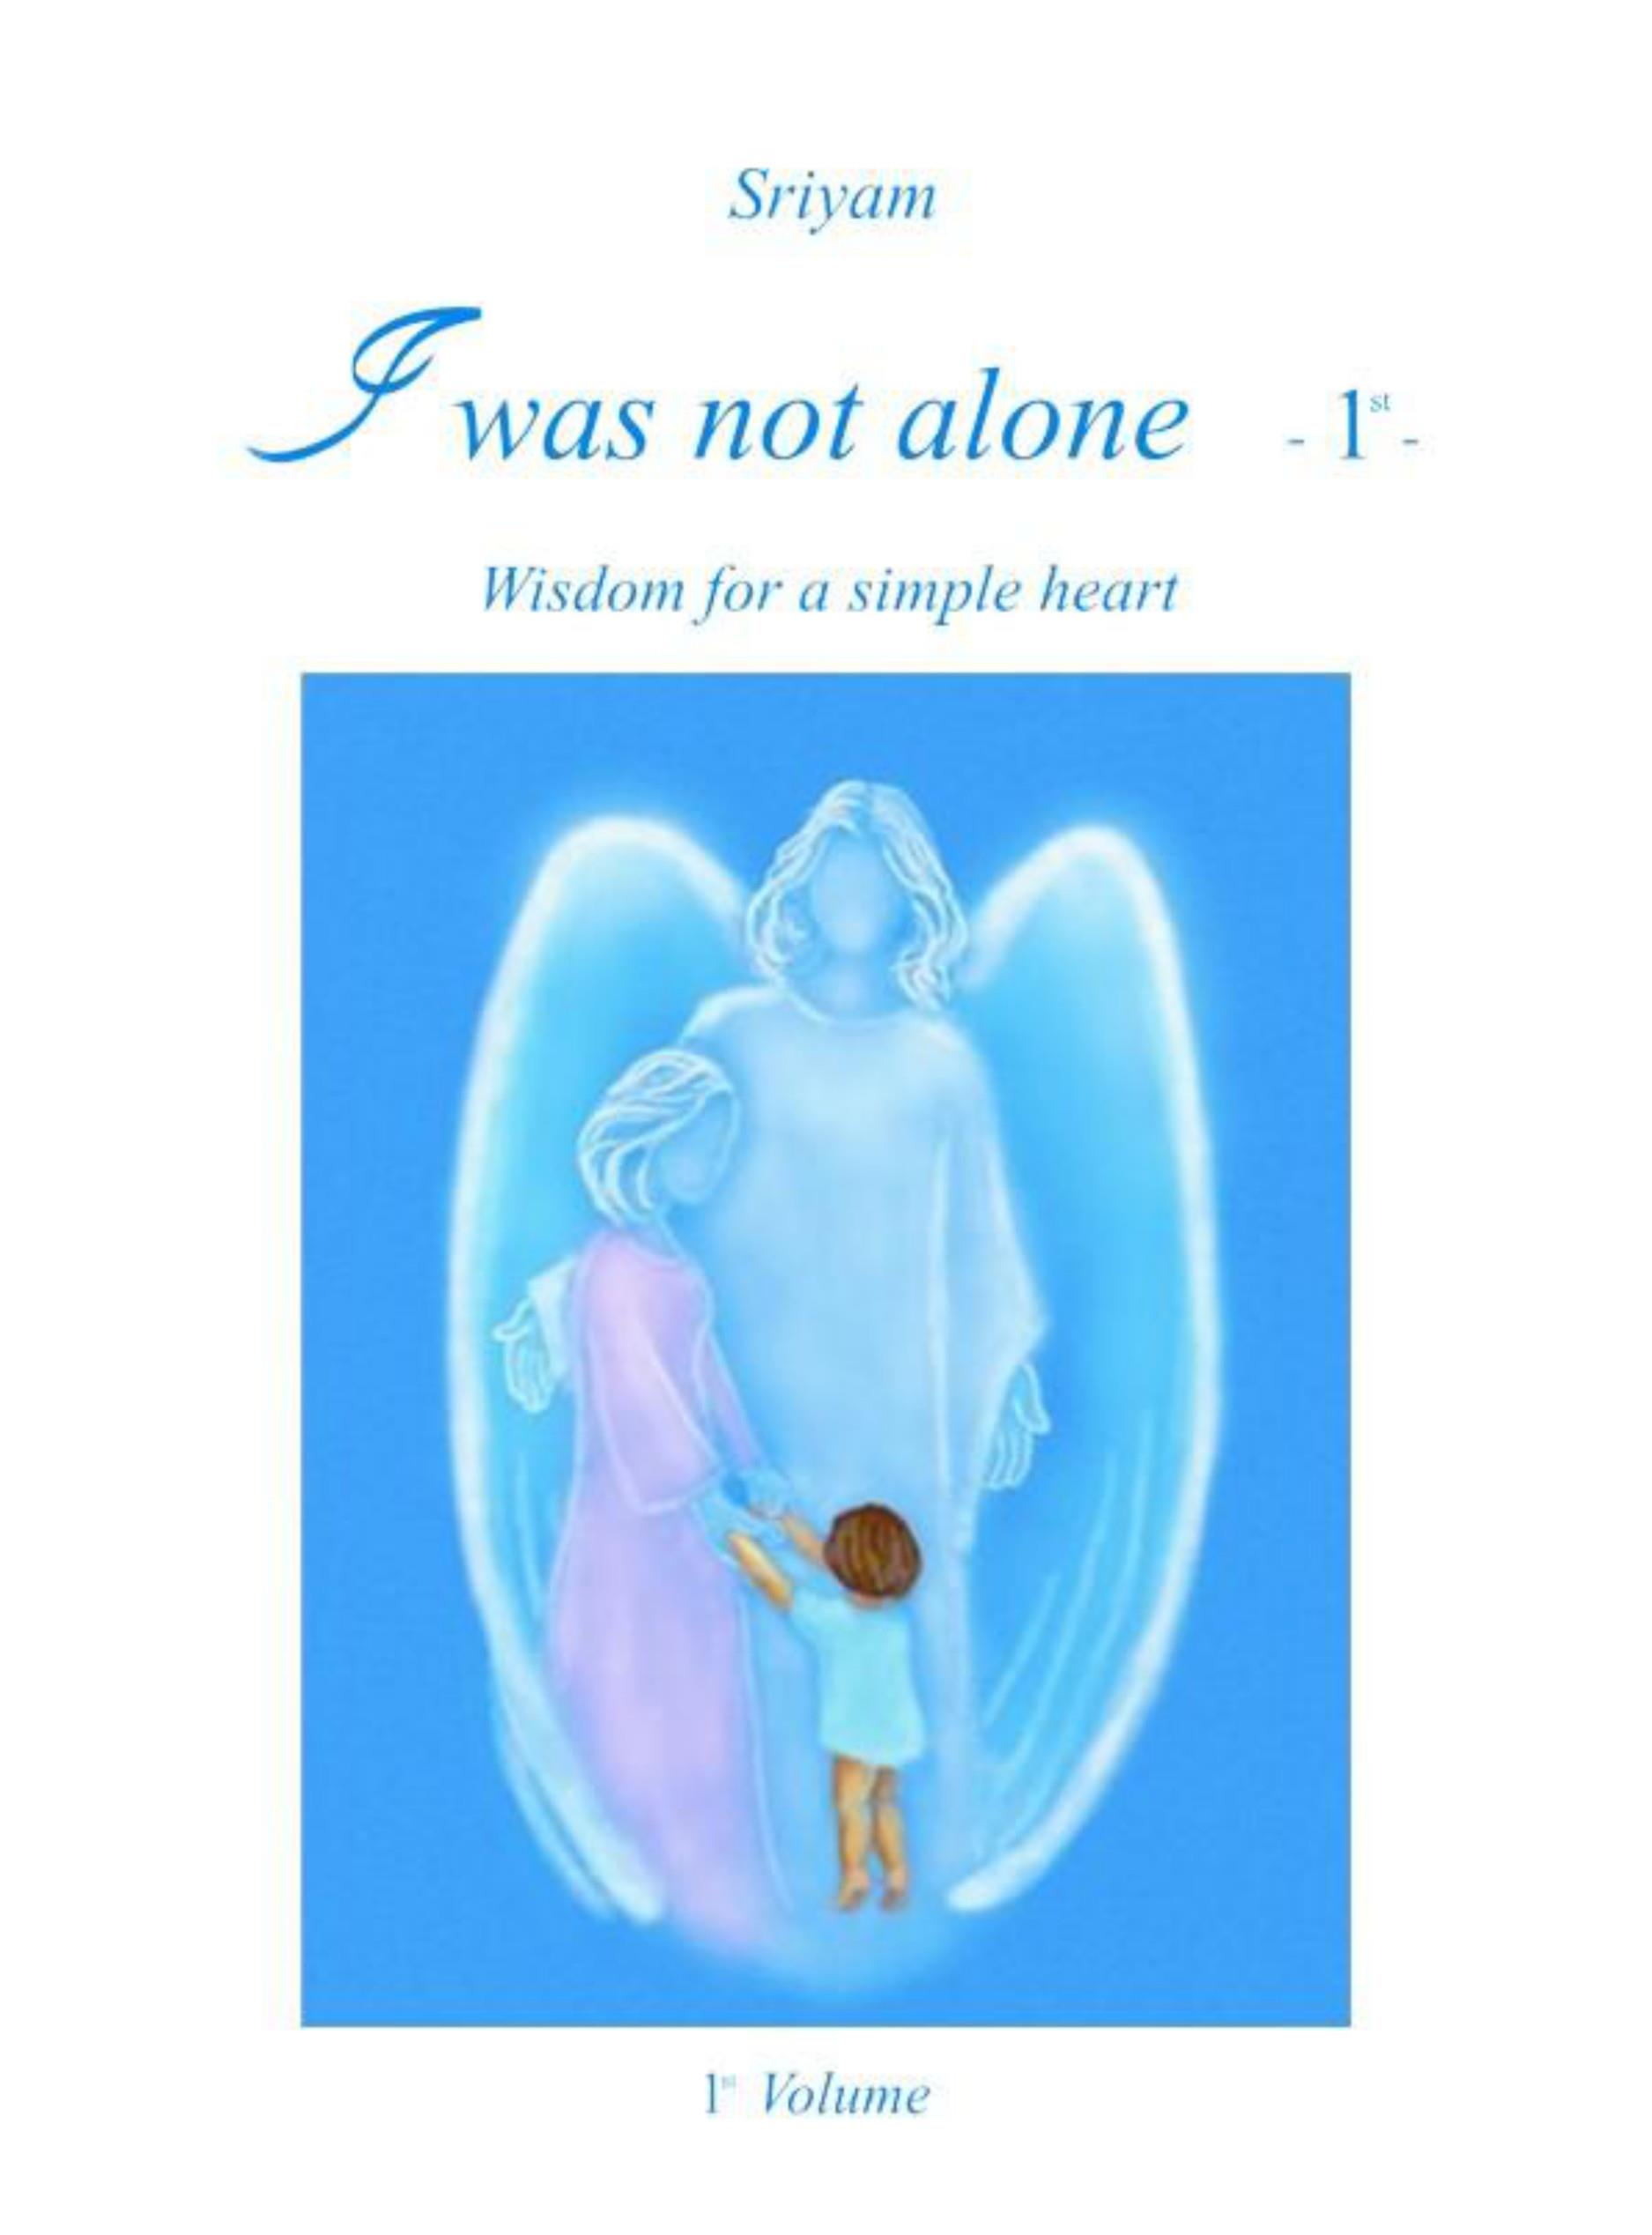 I was not alone (Vol.1)